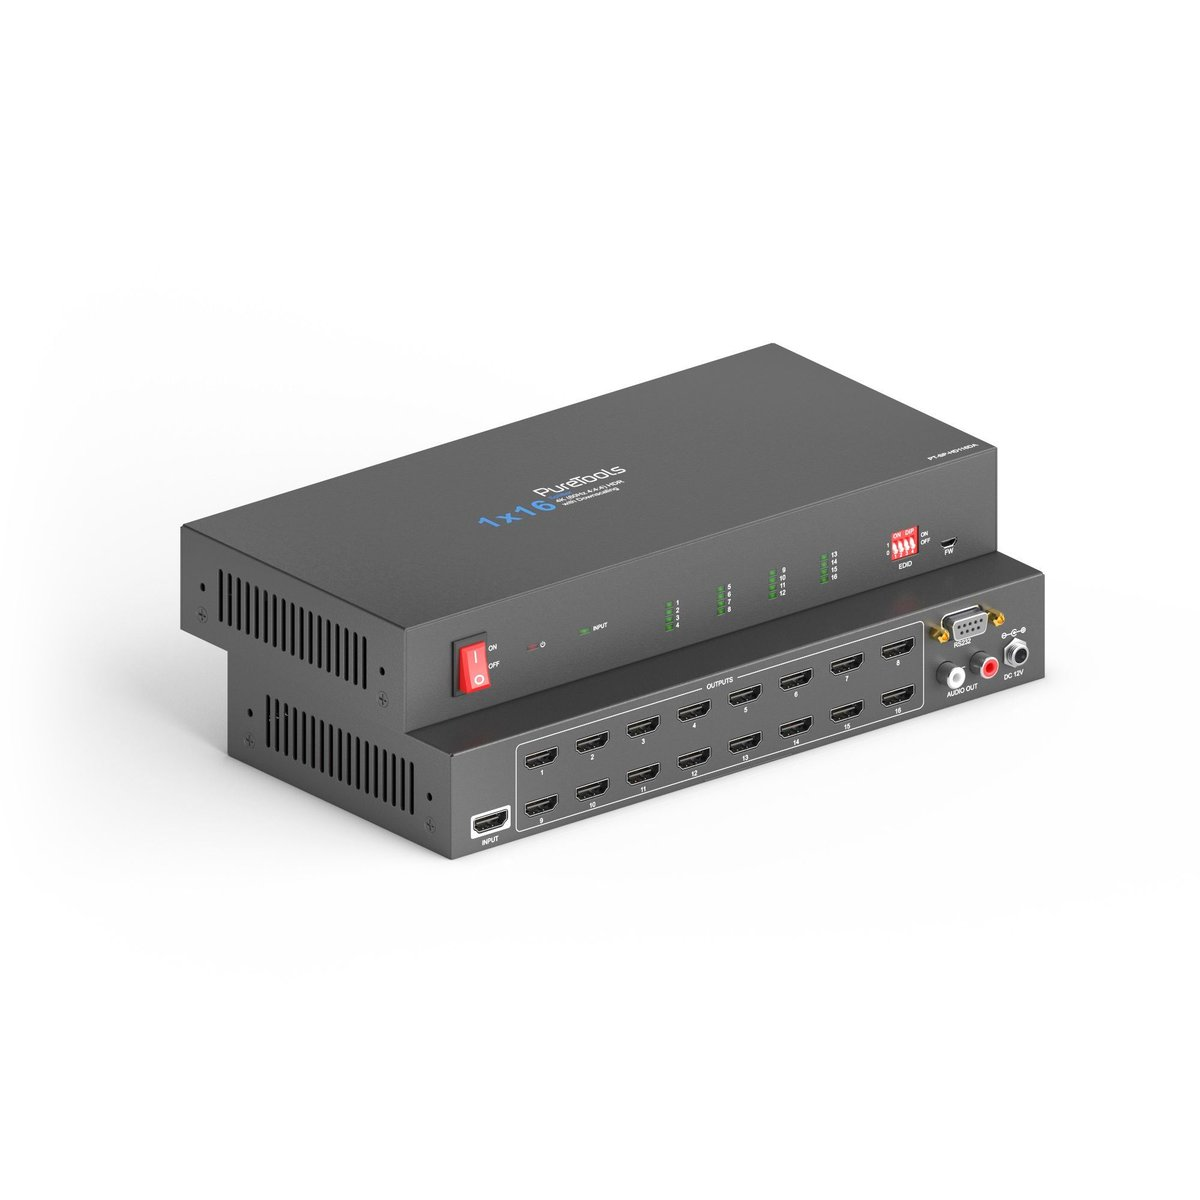 1x16 4K 18Gbps HDMI Splitter  available now features including distributing 1 HDMI signal to up to 16 HDMI outputs, also Supports 18Gbps for resolutions up to 4K UltraHD 60Hz see more features here https://buff.ly/2UGJatI  #AVtweeps #Purelink #HDMISplitterpic.twitter.com/4isZy9KgZI